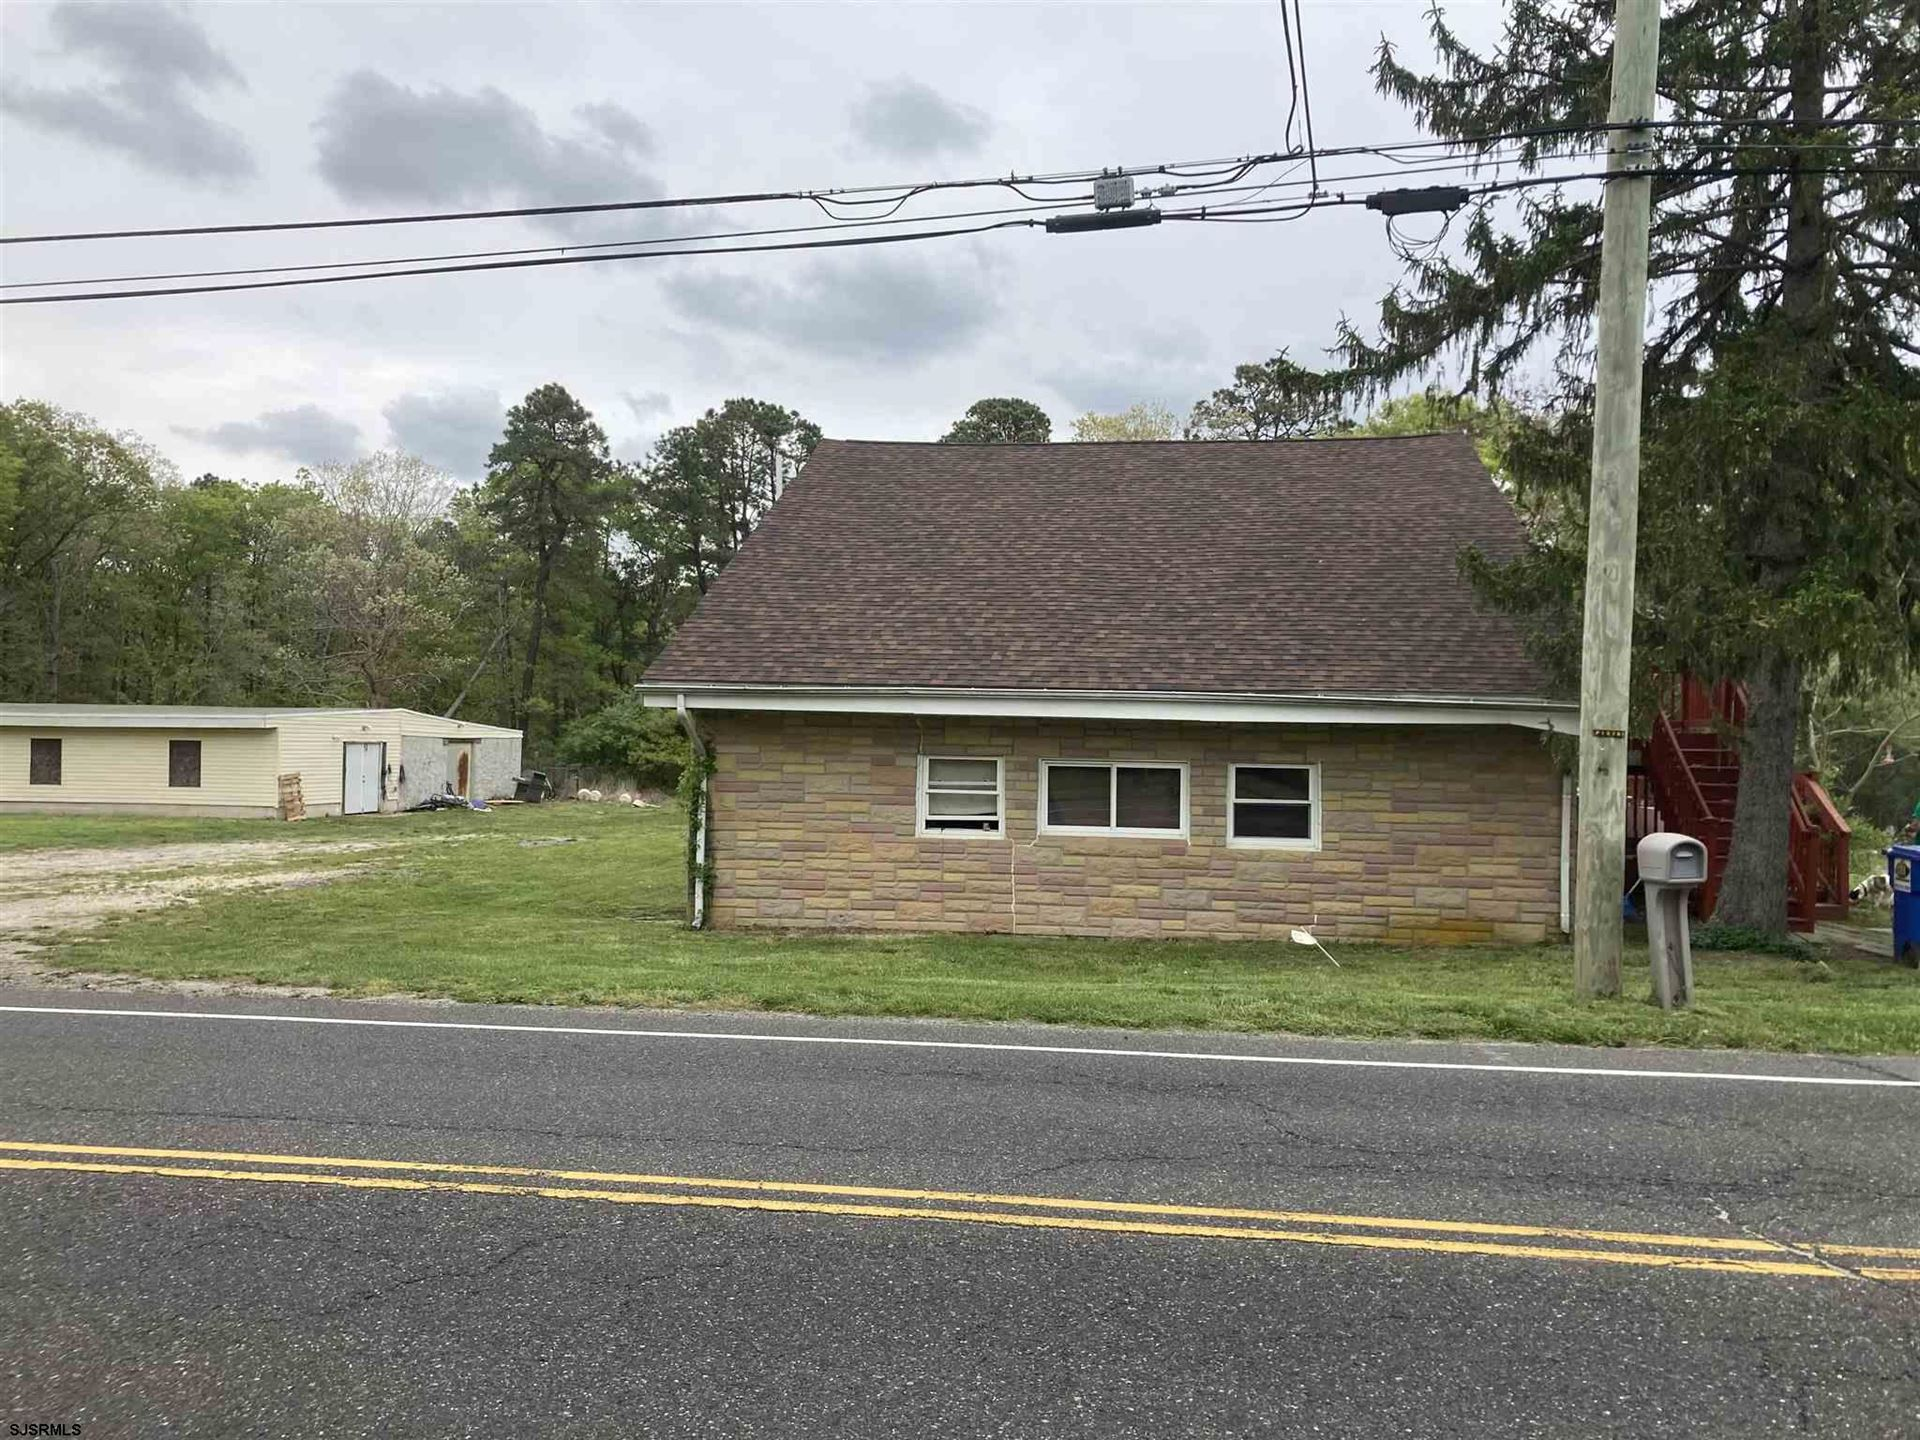 527 E Jimmie Leads Road, Galloway, NJ 08205 - #: 550476